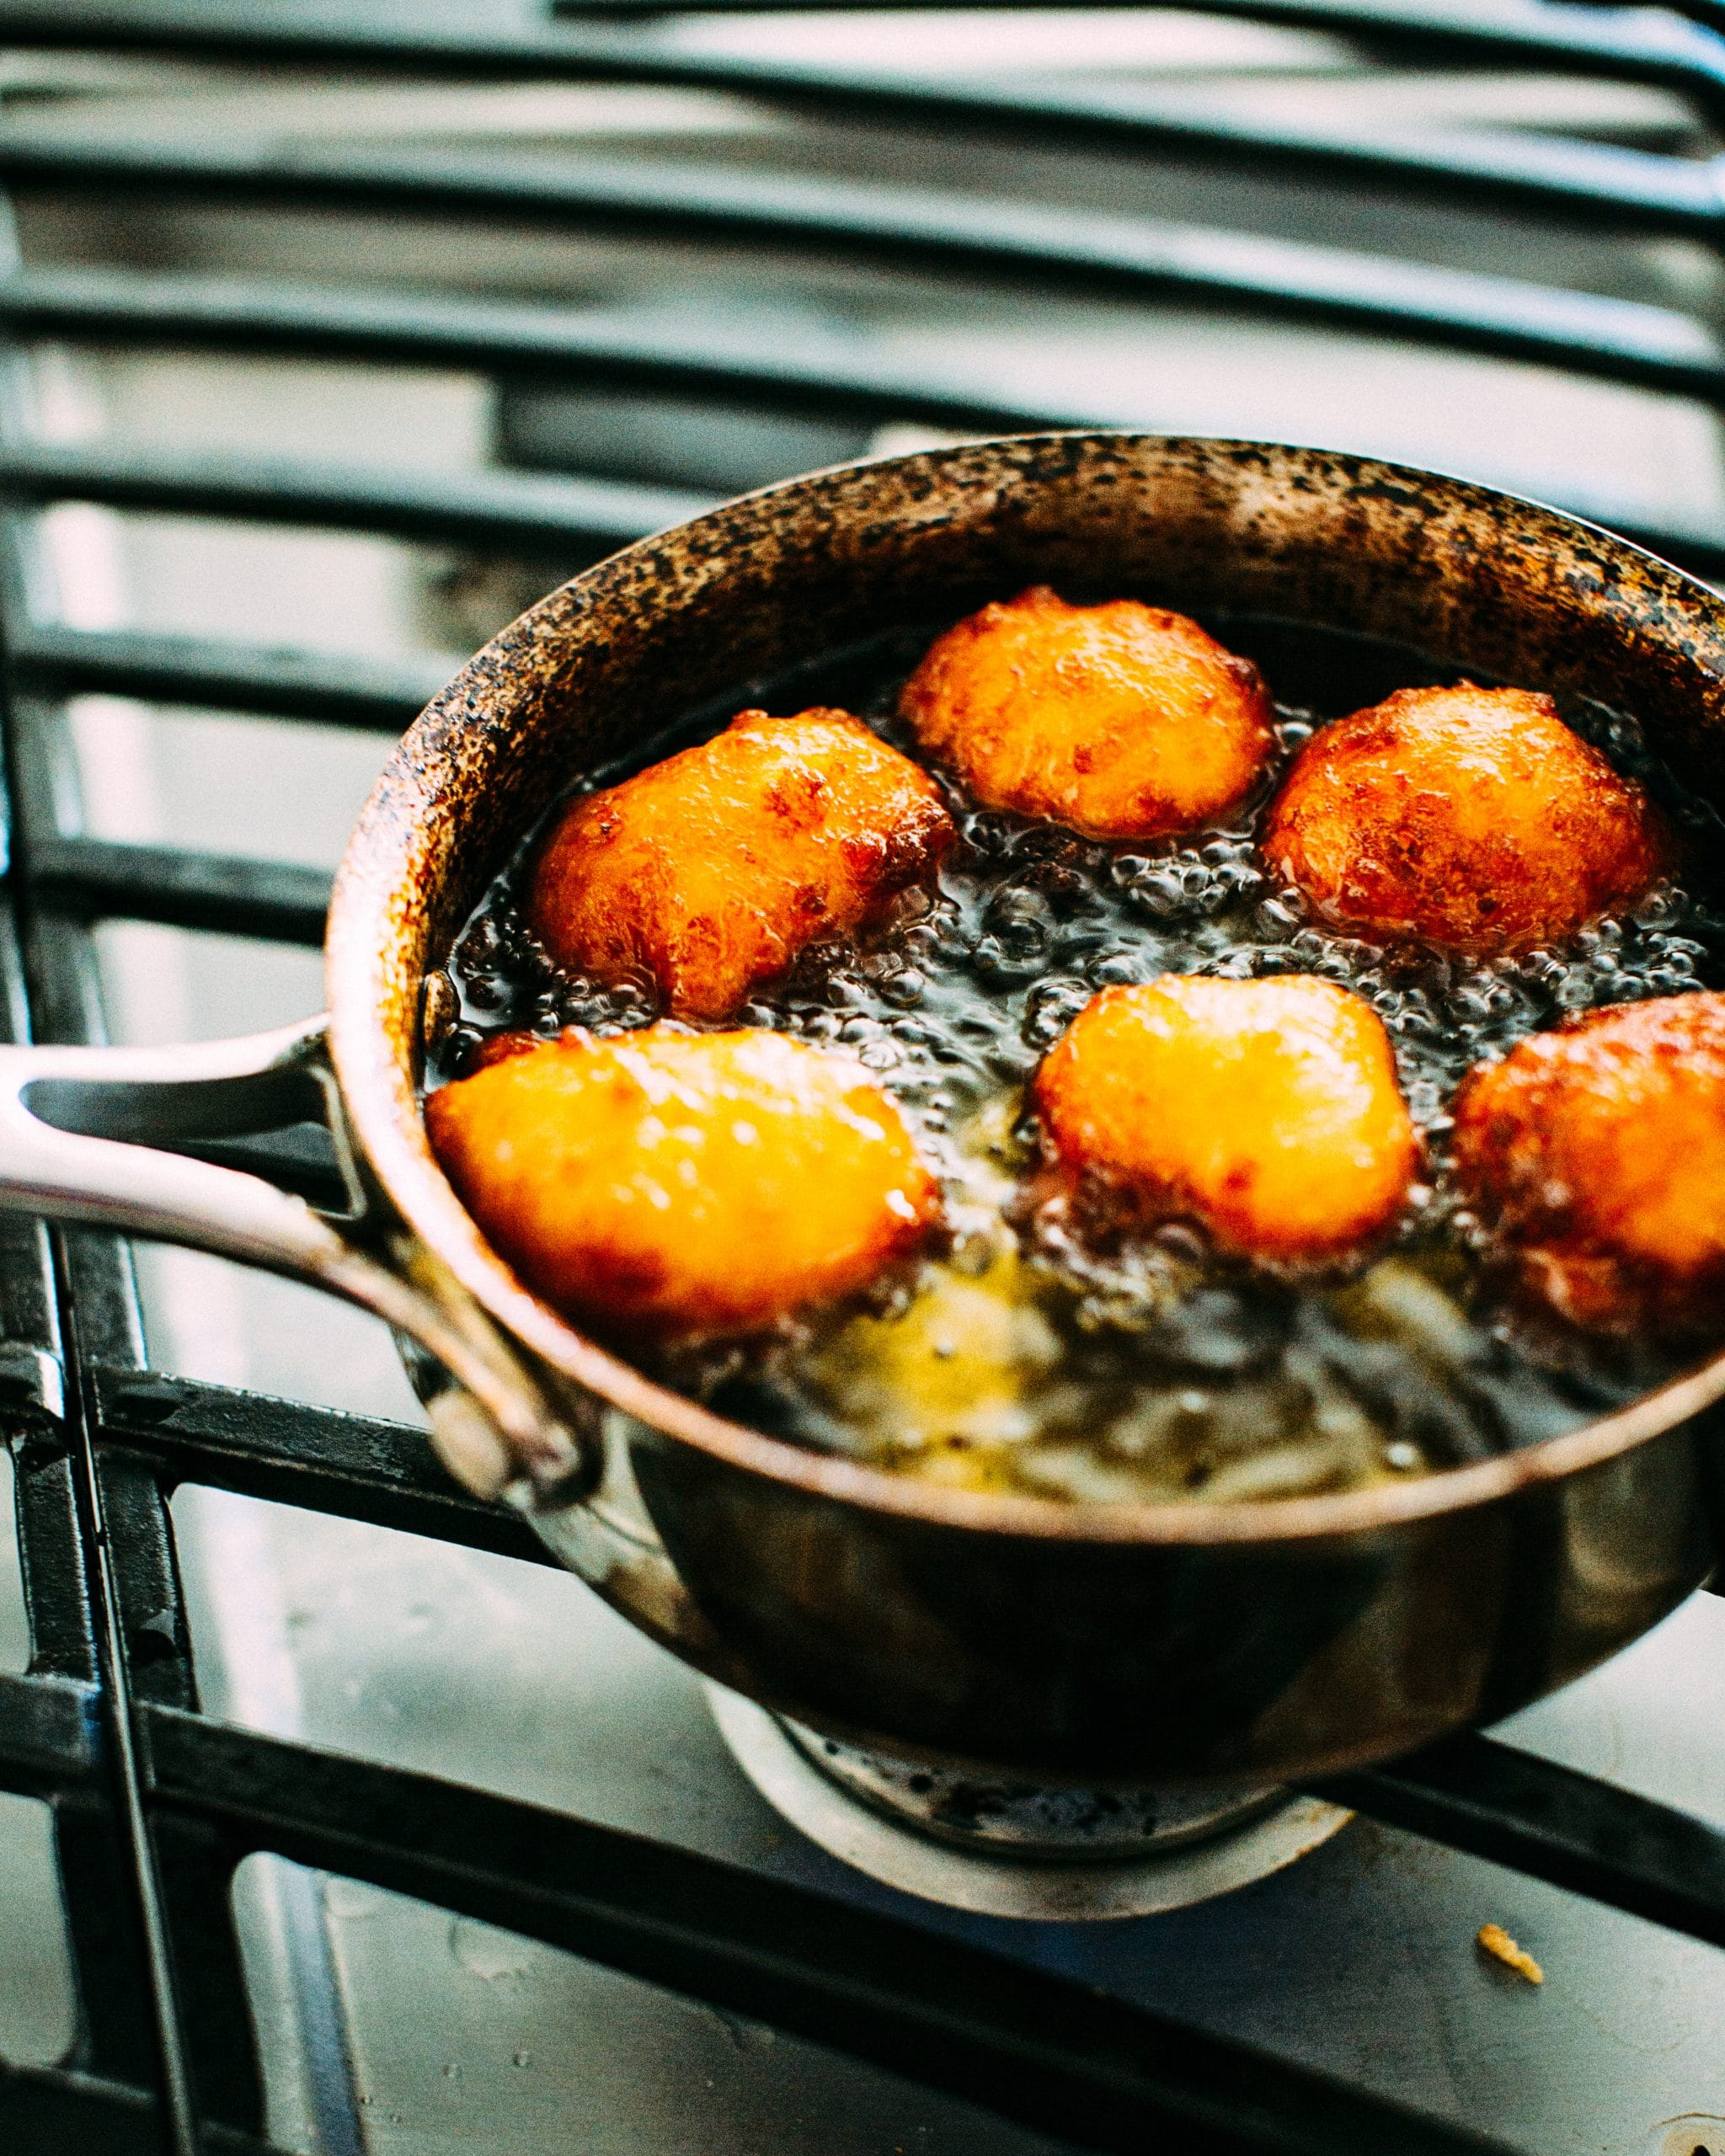 gulab jamun being fried on a stovetop